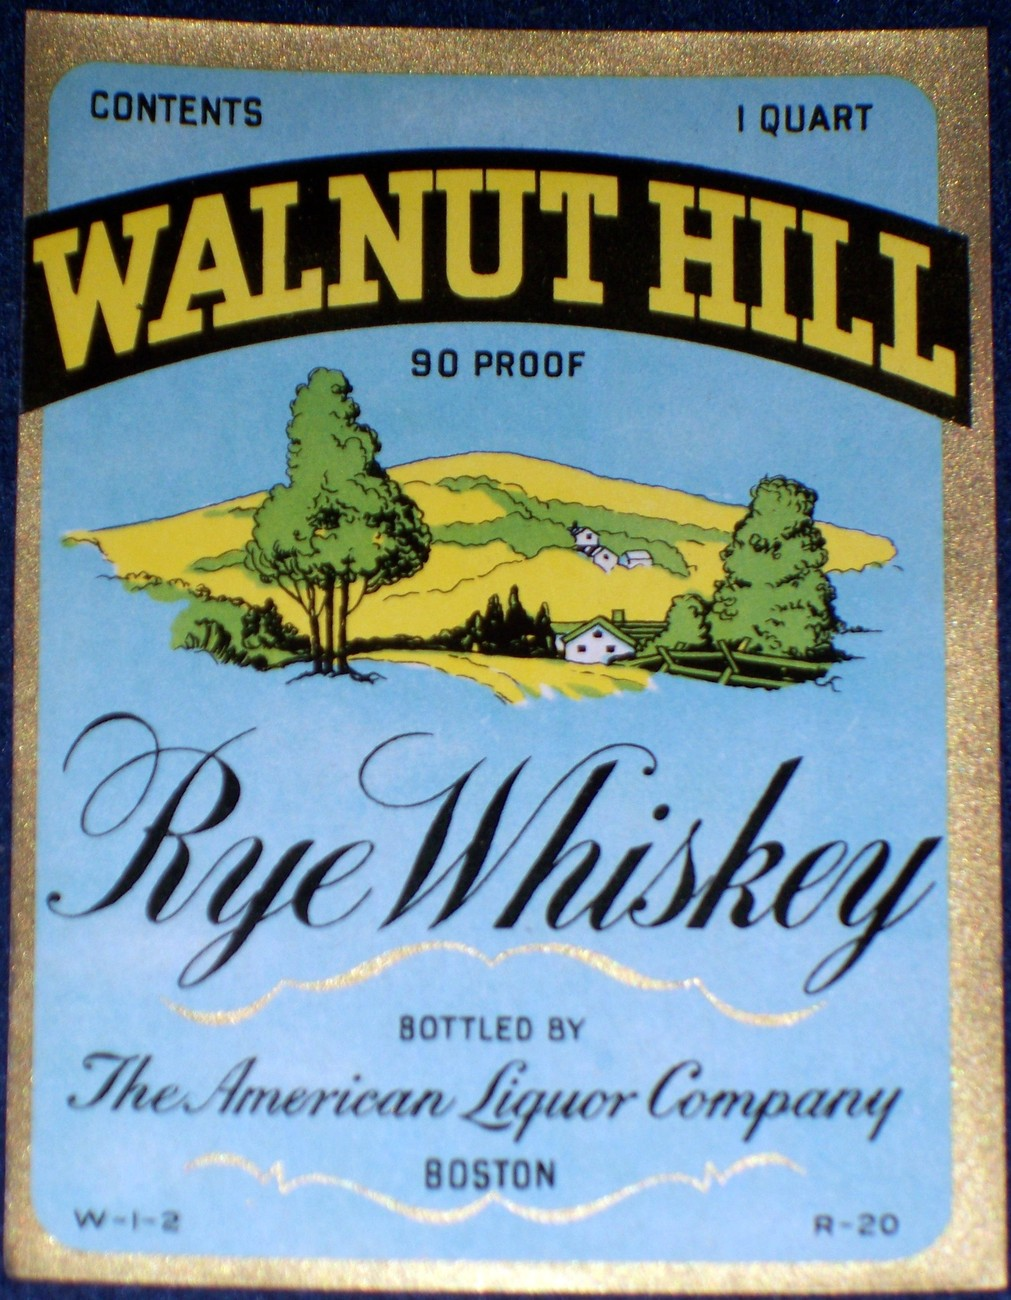 Picturesque! Walnut Hill Rye Whiskey Qt. Label, 1930's